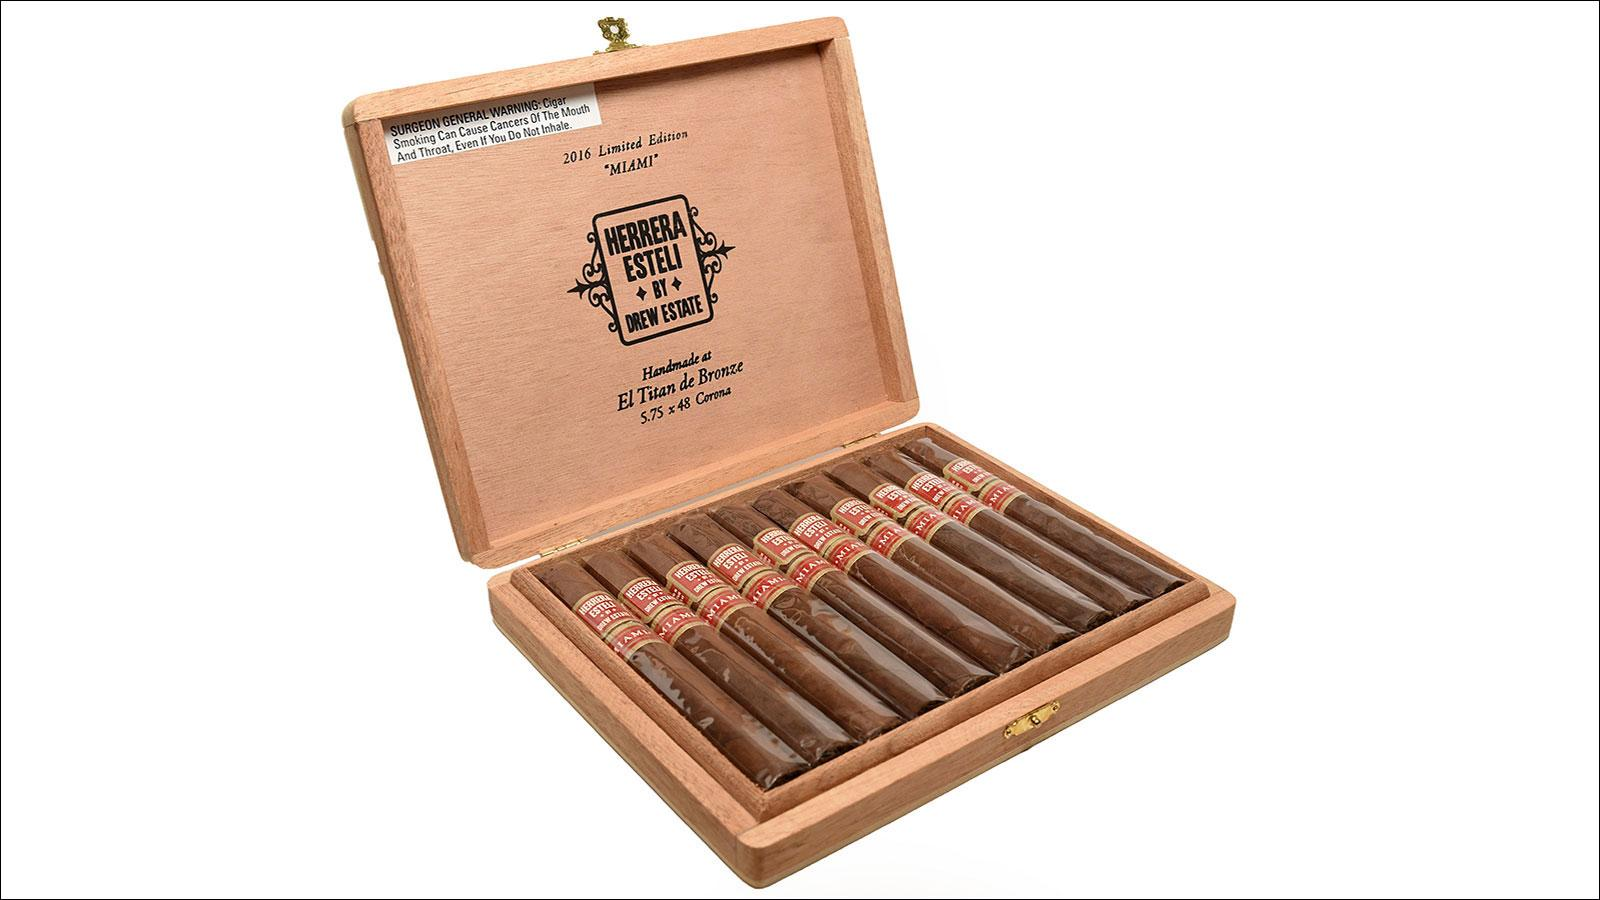 Miami-Made Herrera Esteli To Debut Next Week